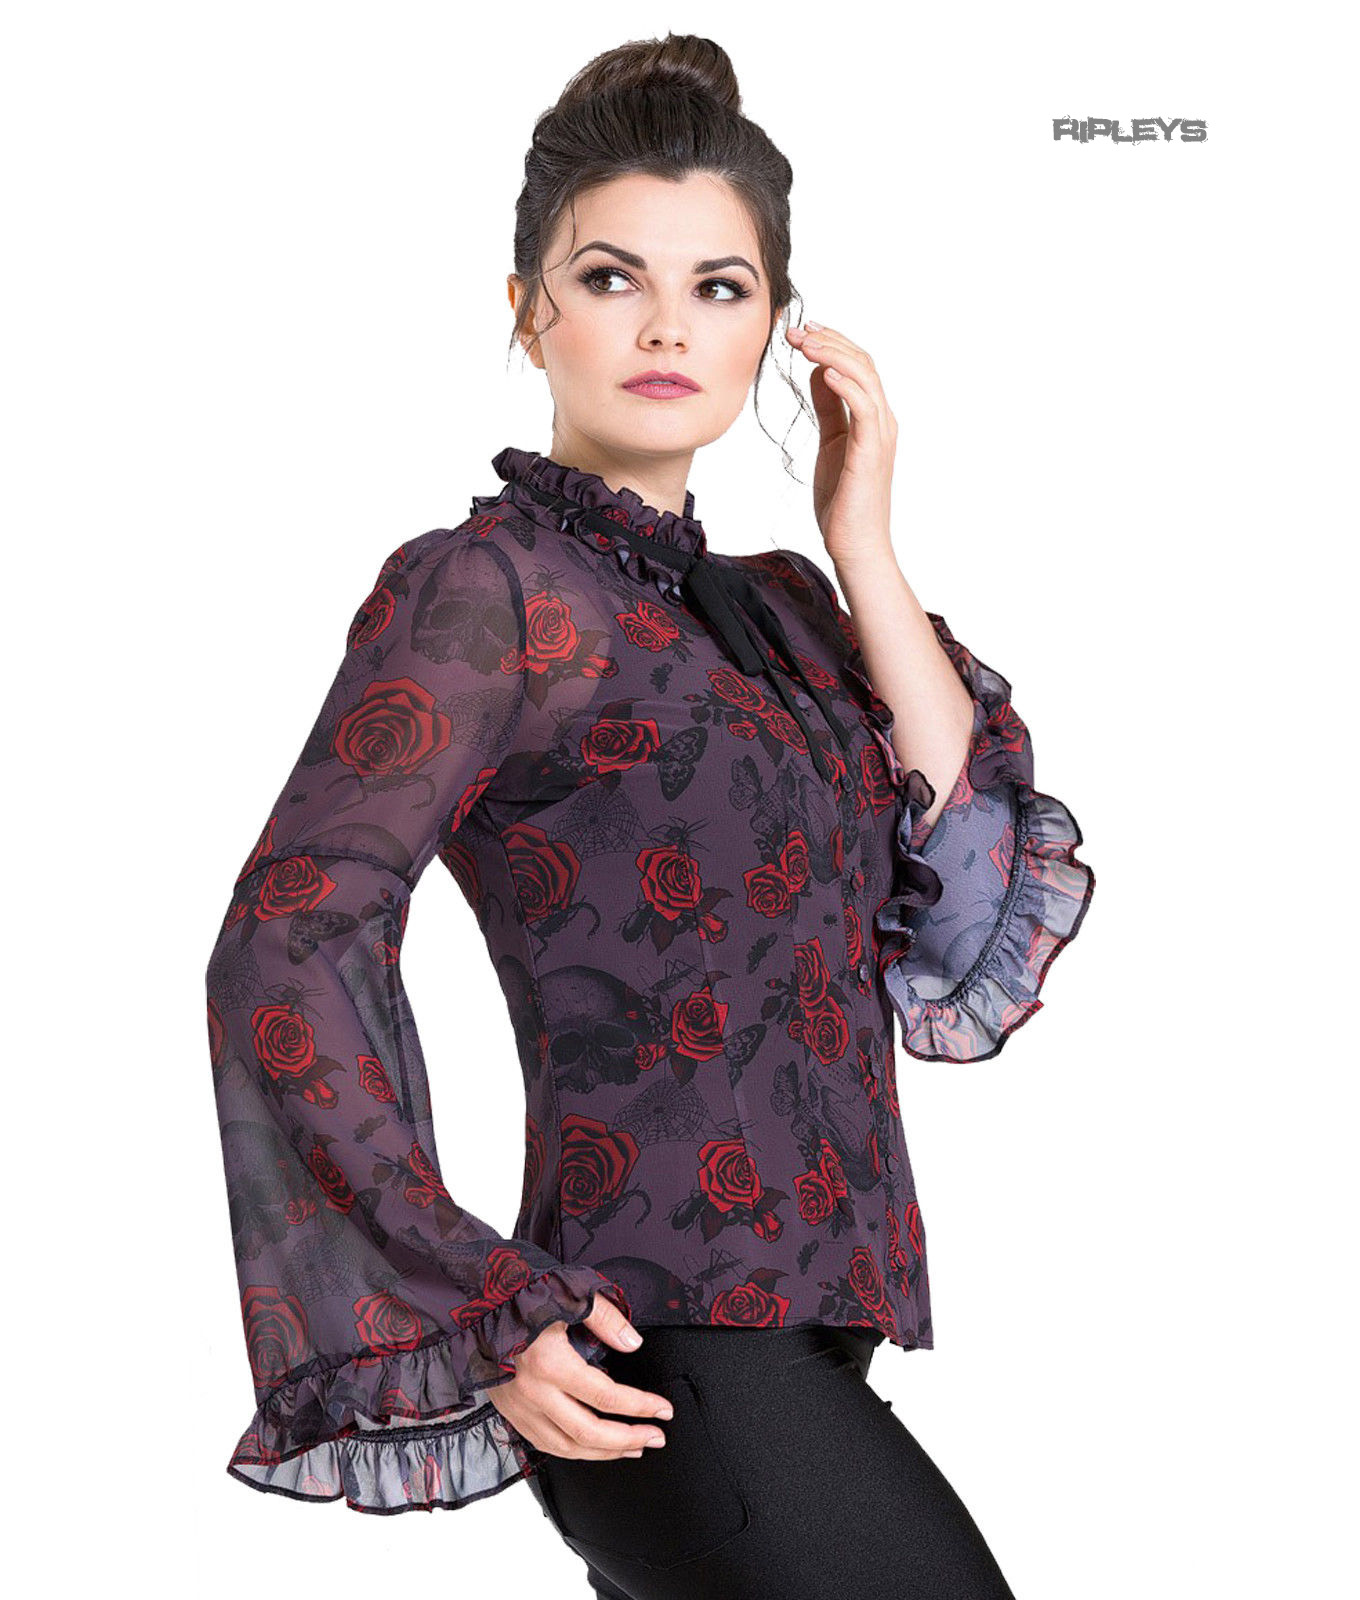 Hell-Bunny-Chiffon-Shirt-Top-Gothic-Floaty-BUGS-amp-ROSES-Purple-Blouse-All-Sizes thumbnail 16